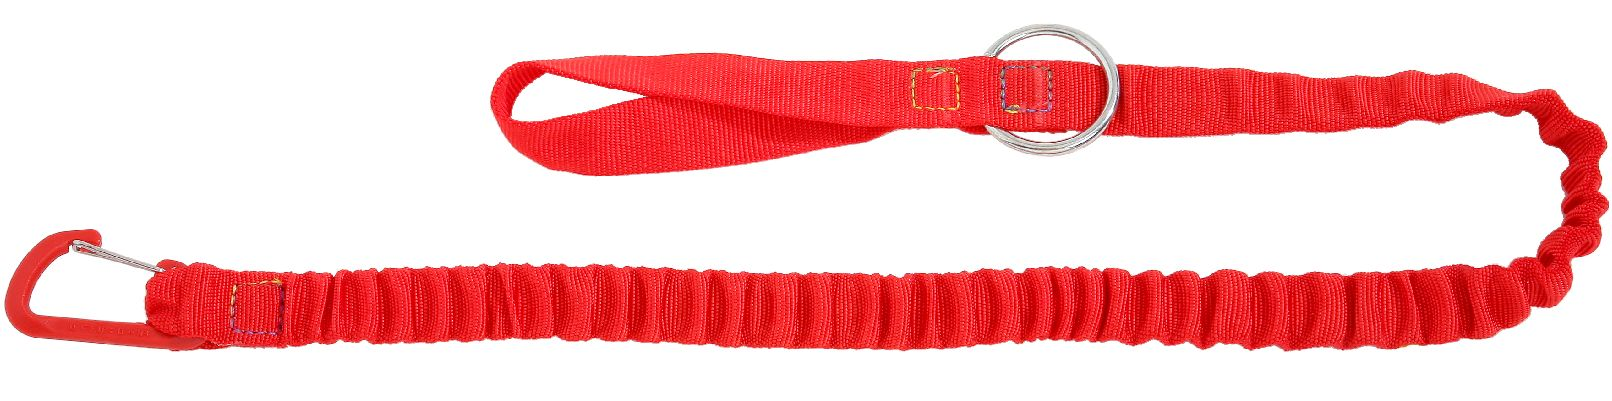 MILLER ELASTIC LANYARD FOR CHAINSAW